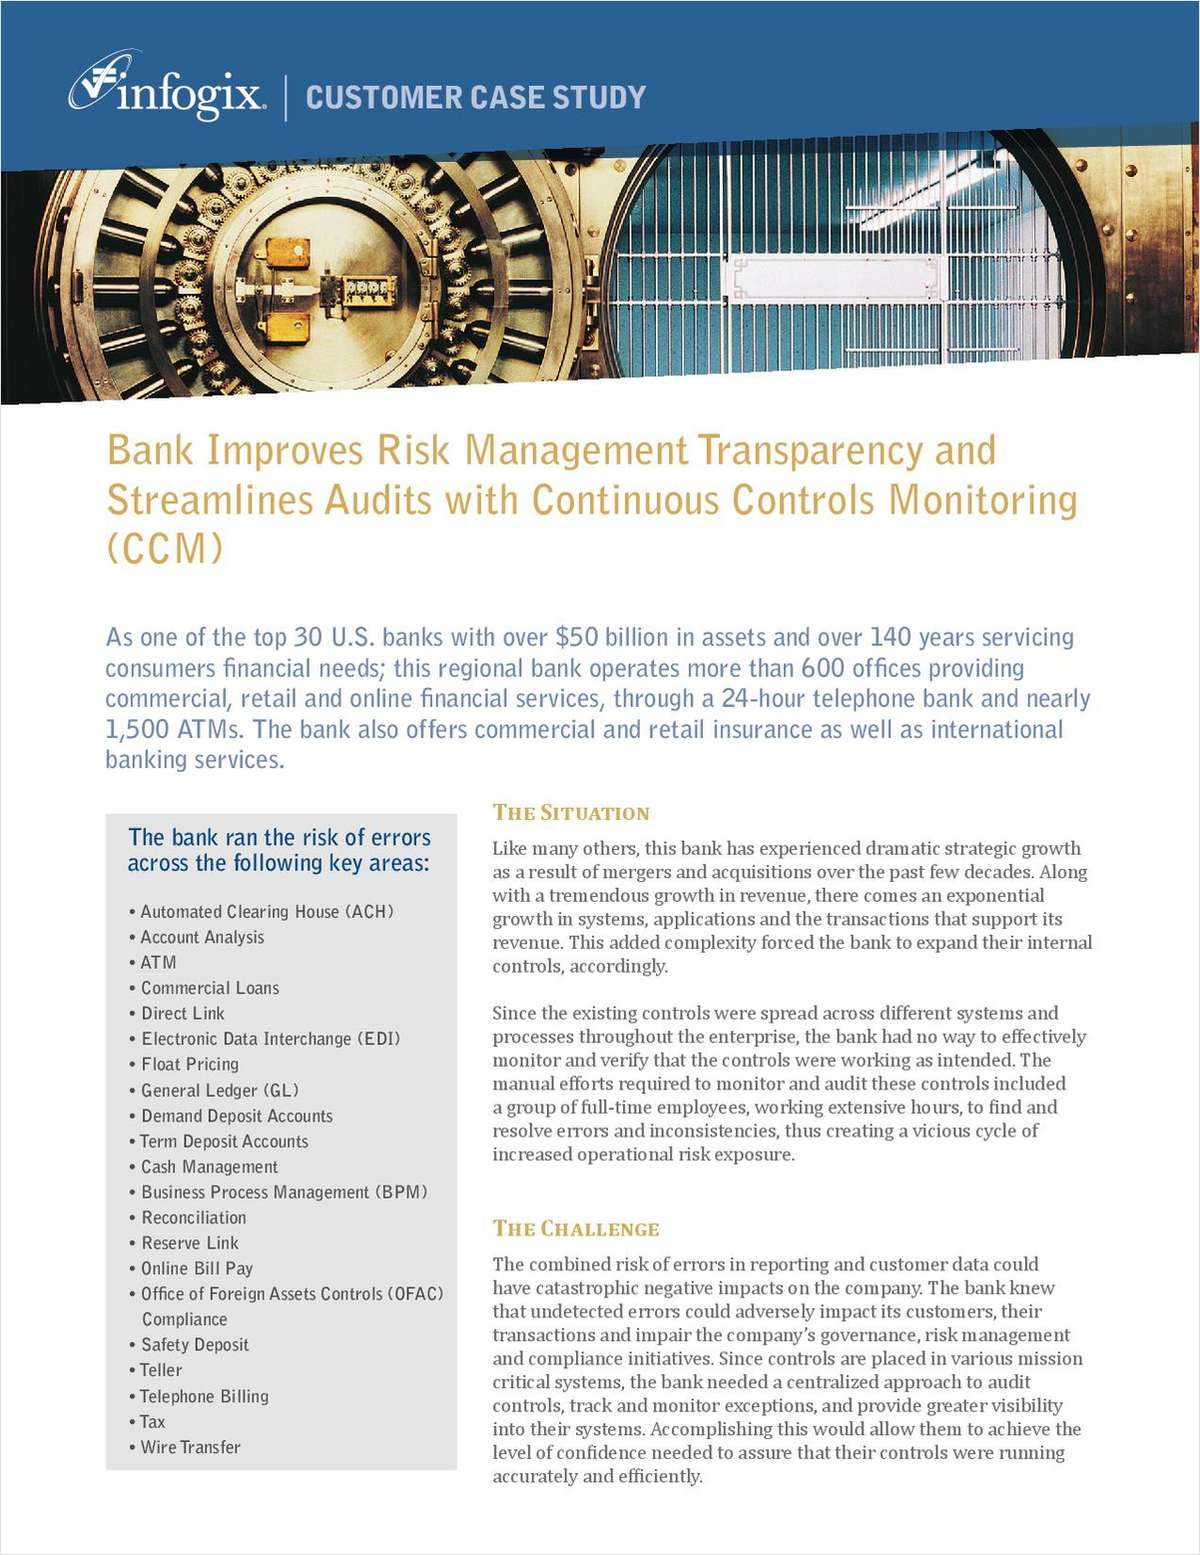 Bank Improves Risk Management Transparency and Streamlines Audits with Continuous Controls Monitoring (CCM)